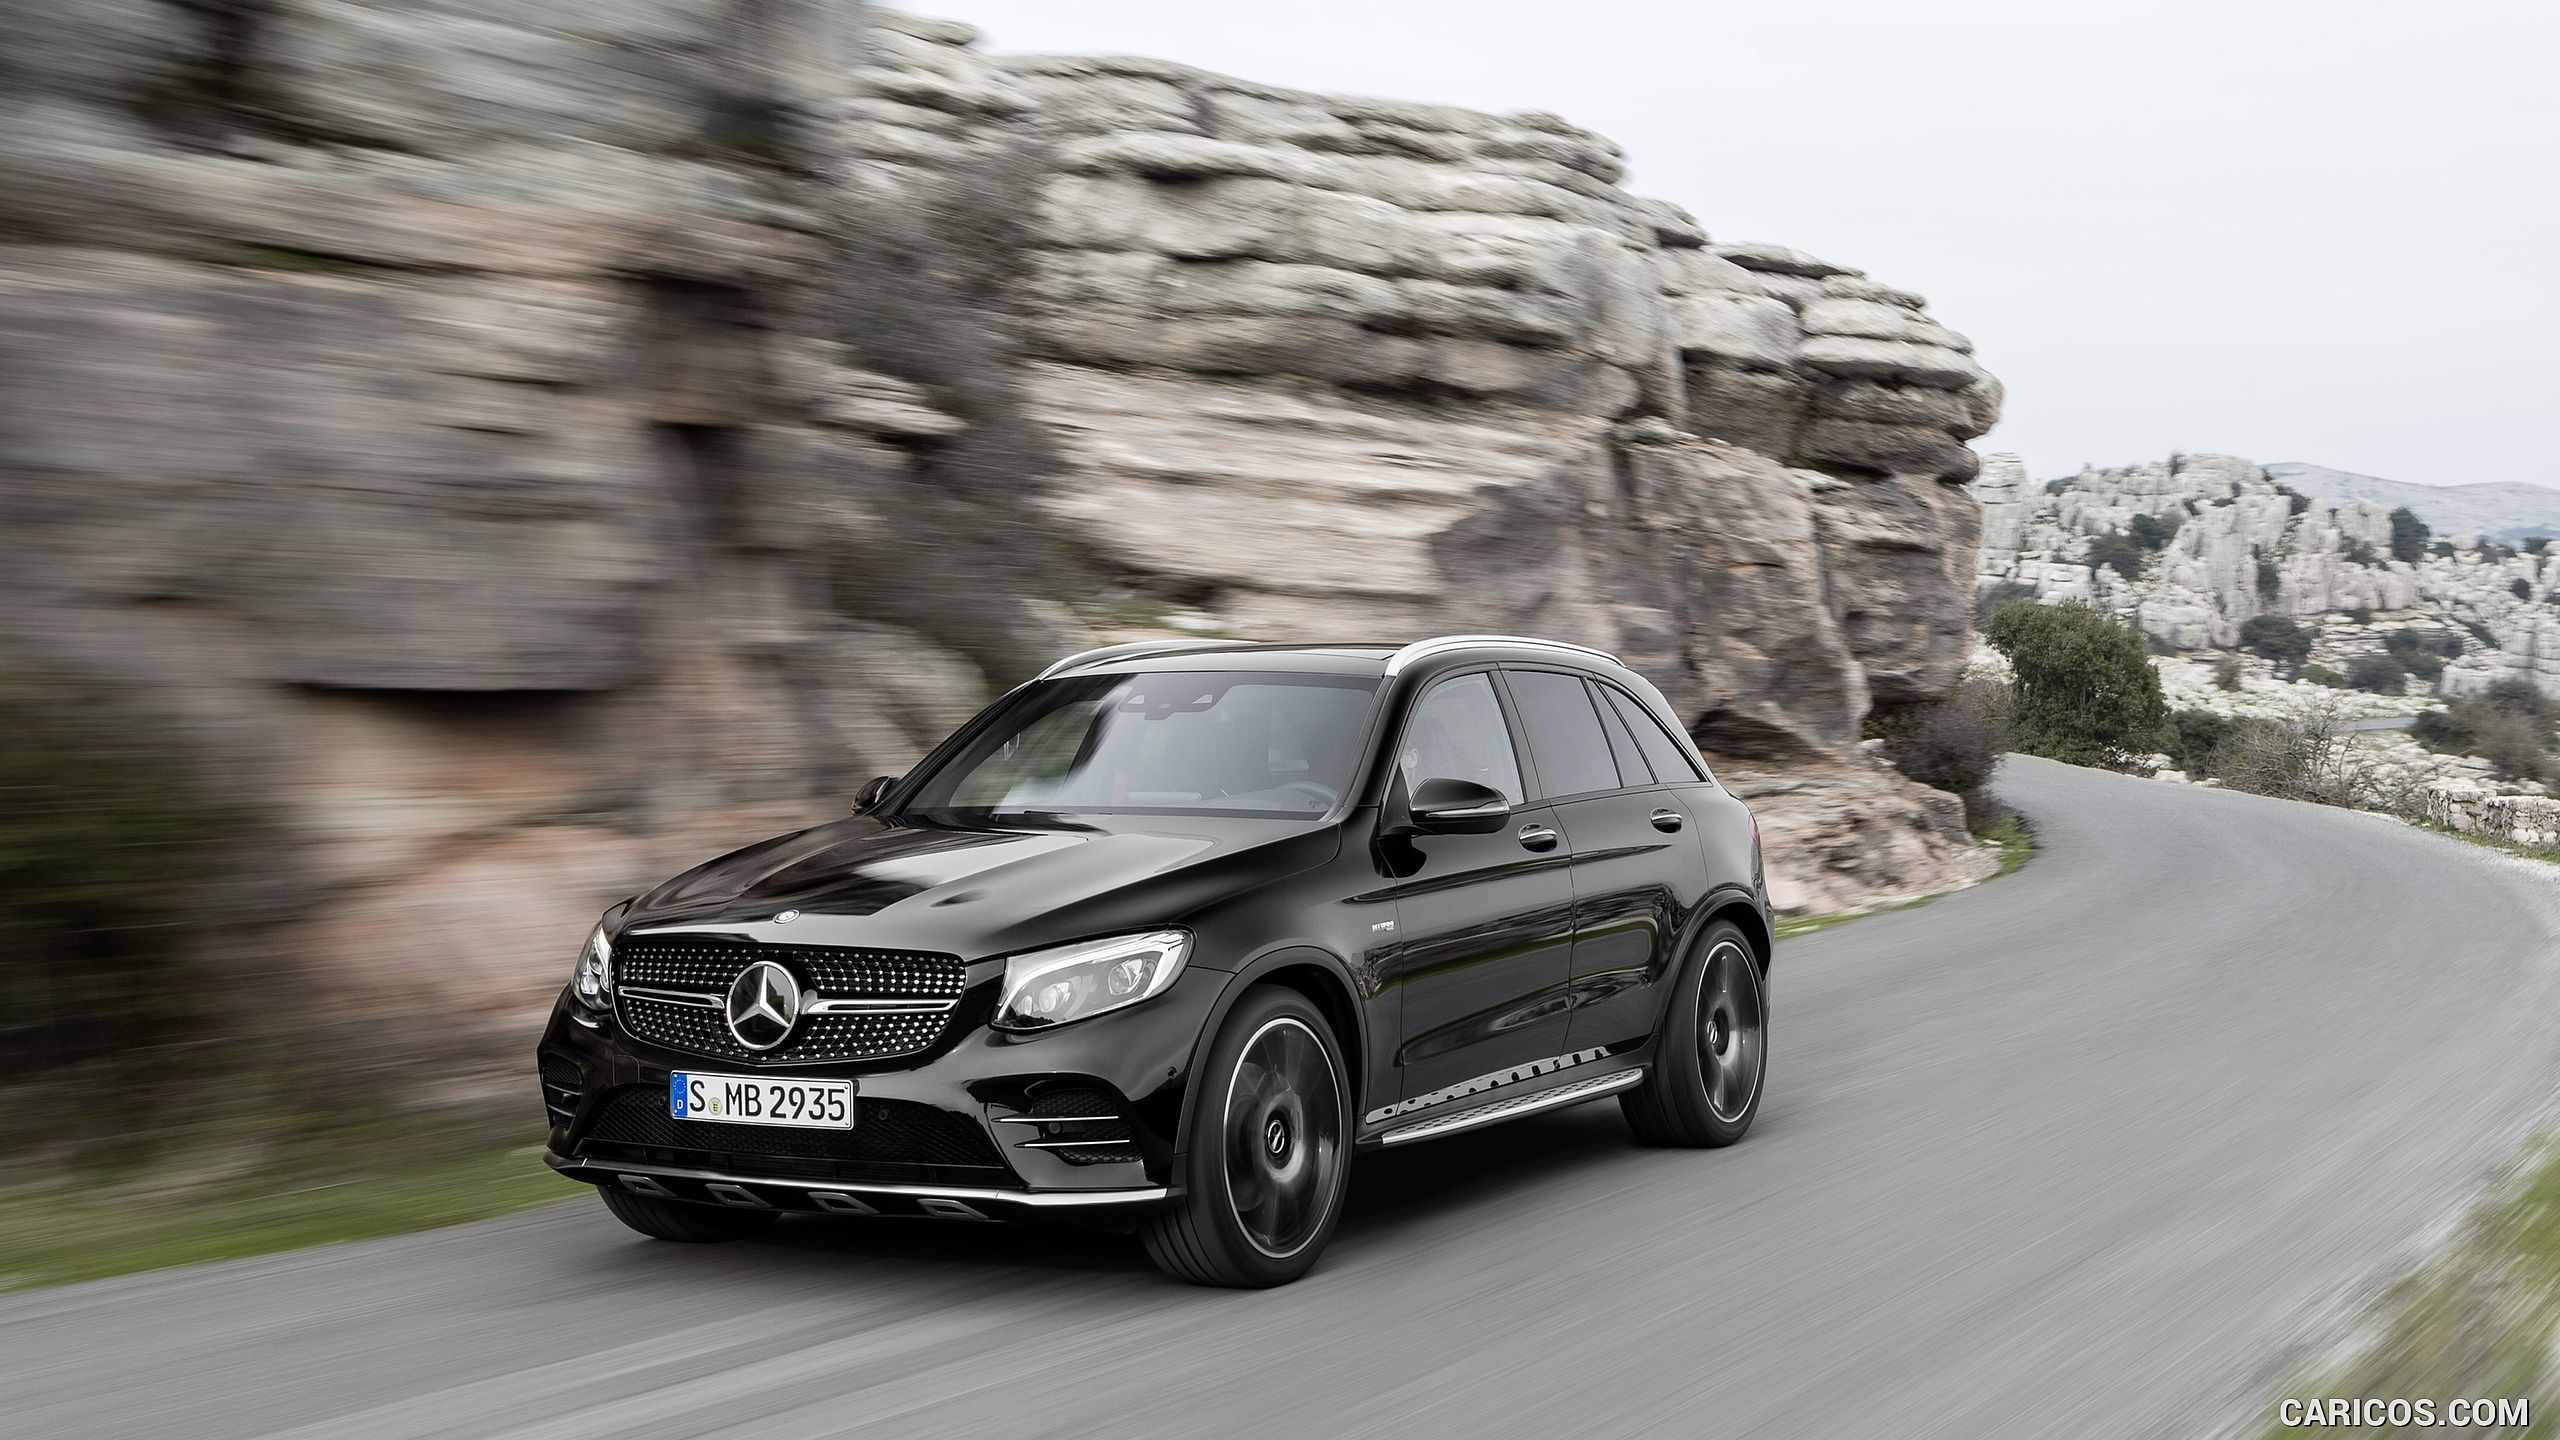 2017 Mercedes Amg Glc 43 Wallpaper Mercedes Amg Mercedes Hd